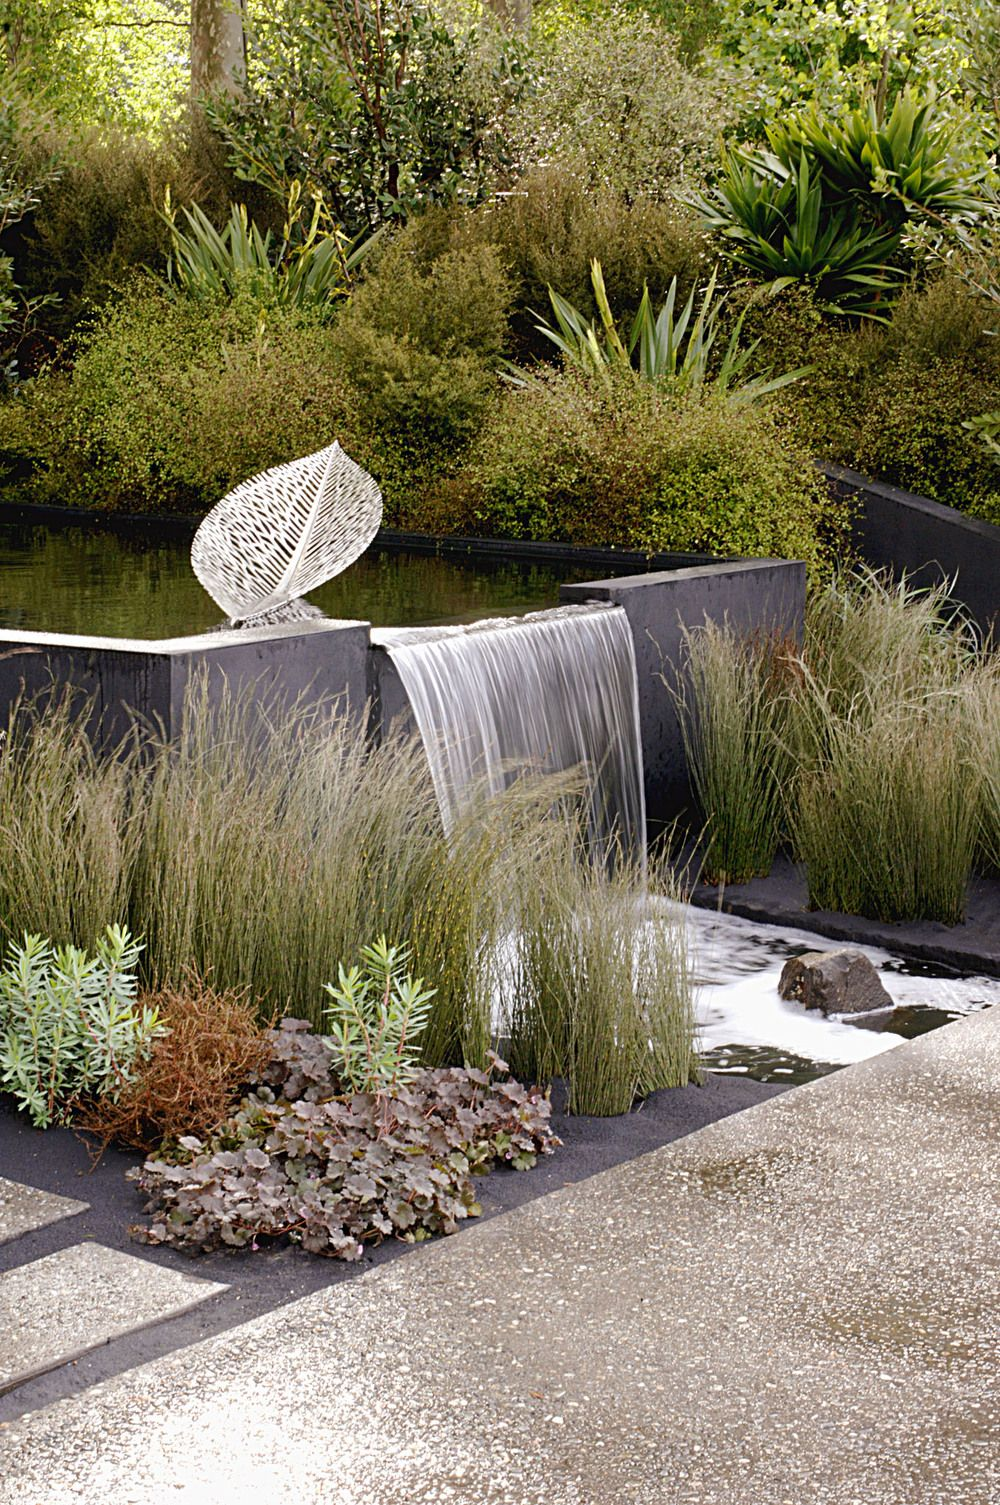 The 100 Pure New Zealand Garden RHS Chelsea Flower Show